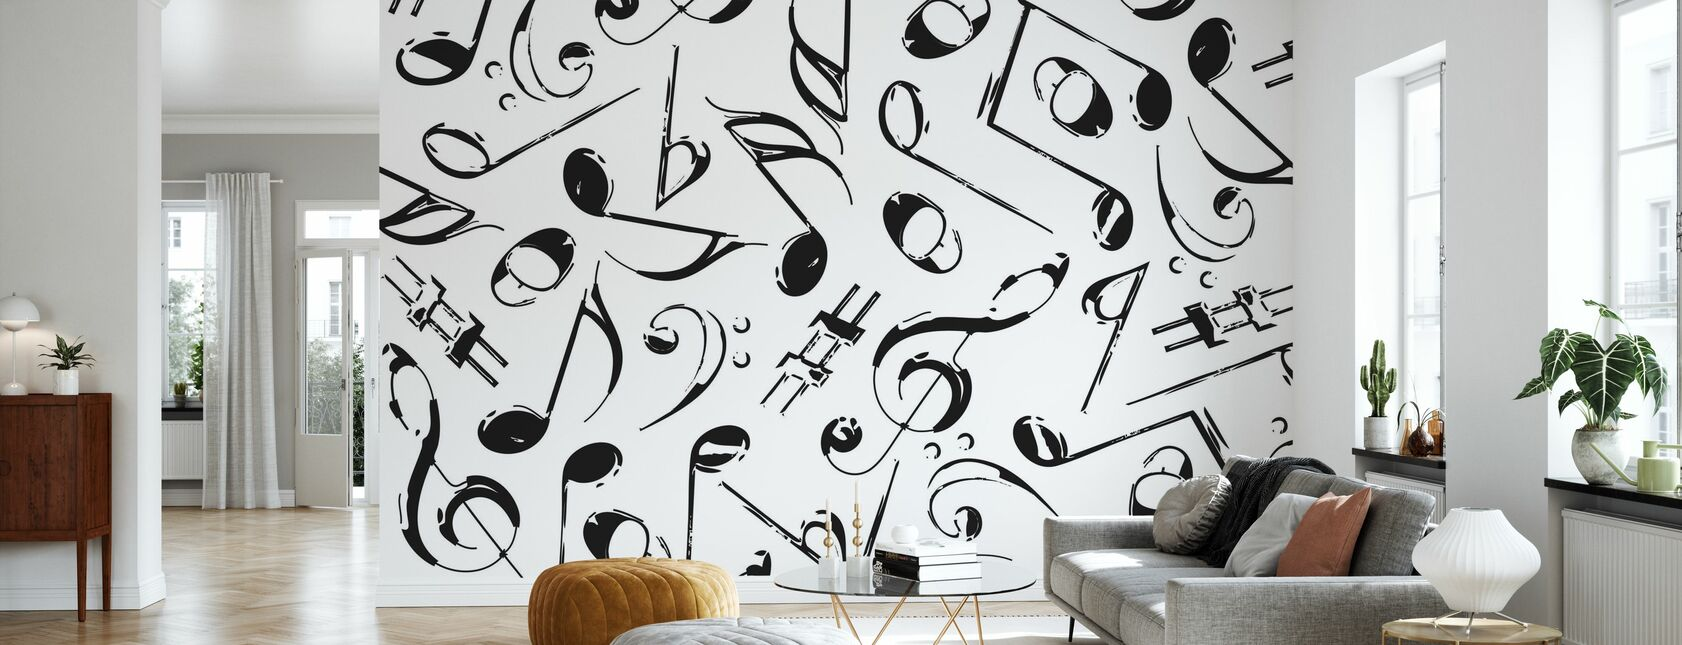 Grunge Musical Notes - Wallpaper - Living Room